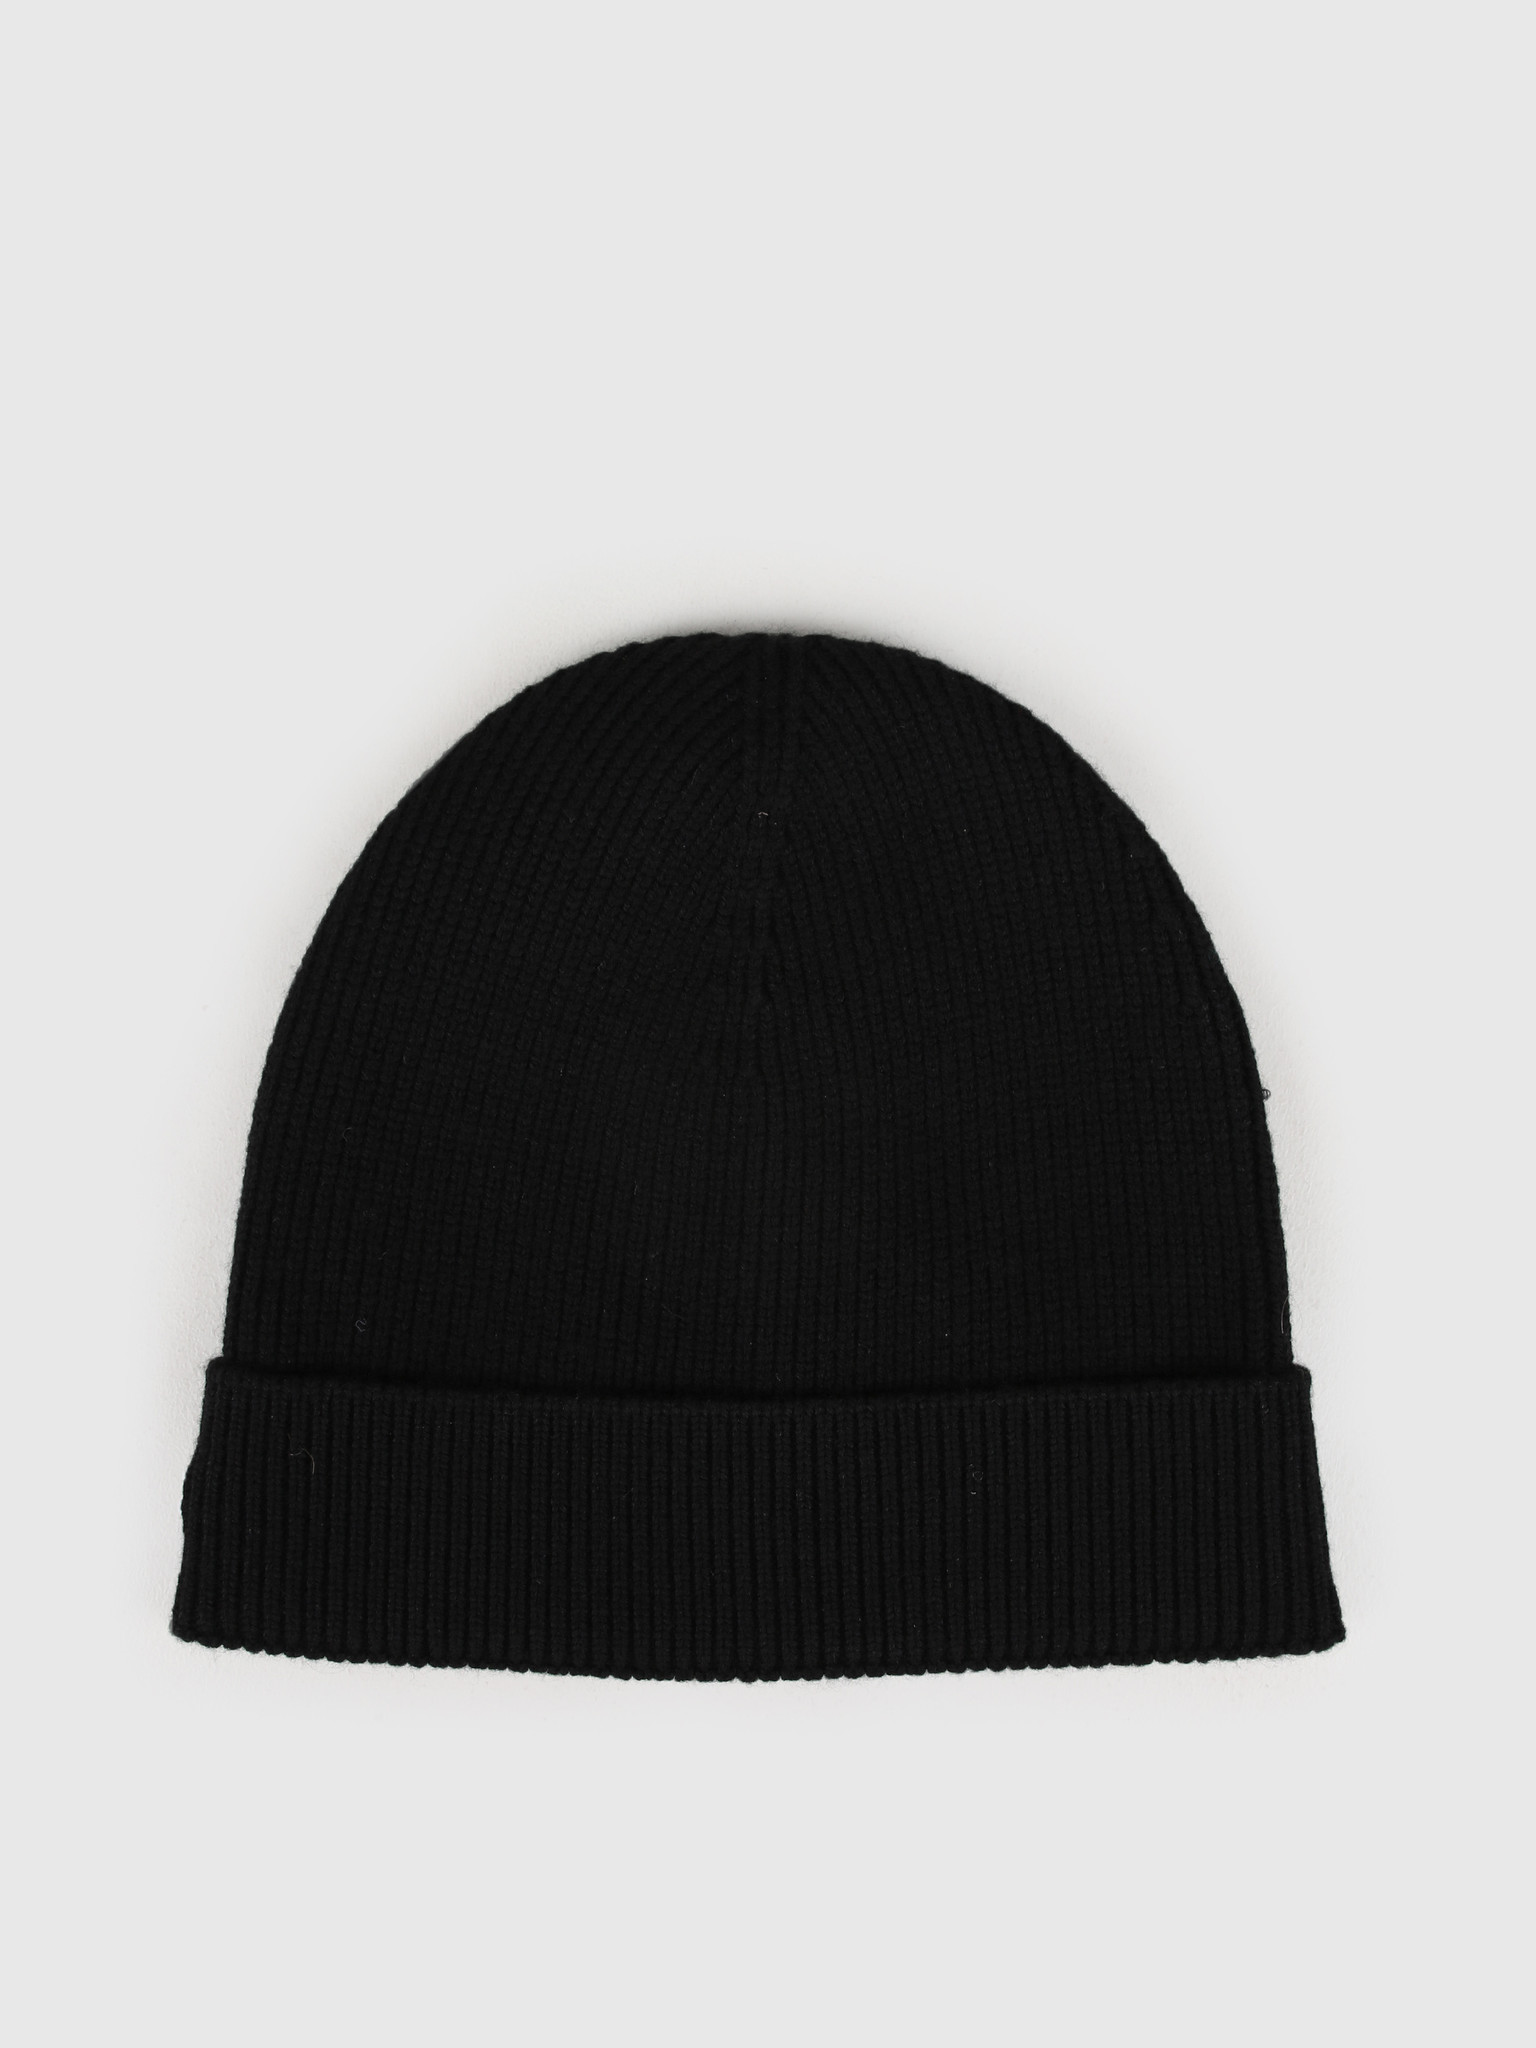 Lacoste Lacoste 2G4B Knitted Cap 07A Noir Rb3502-83